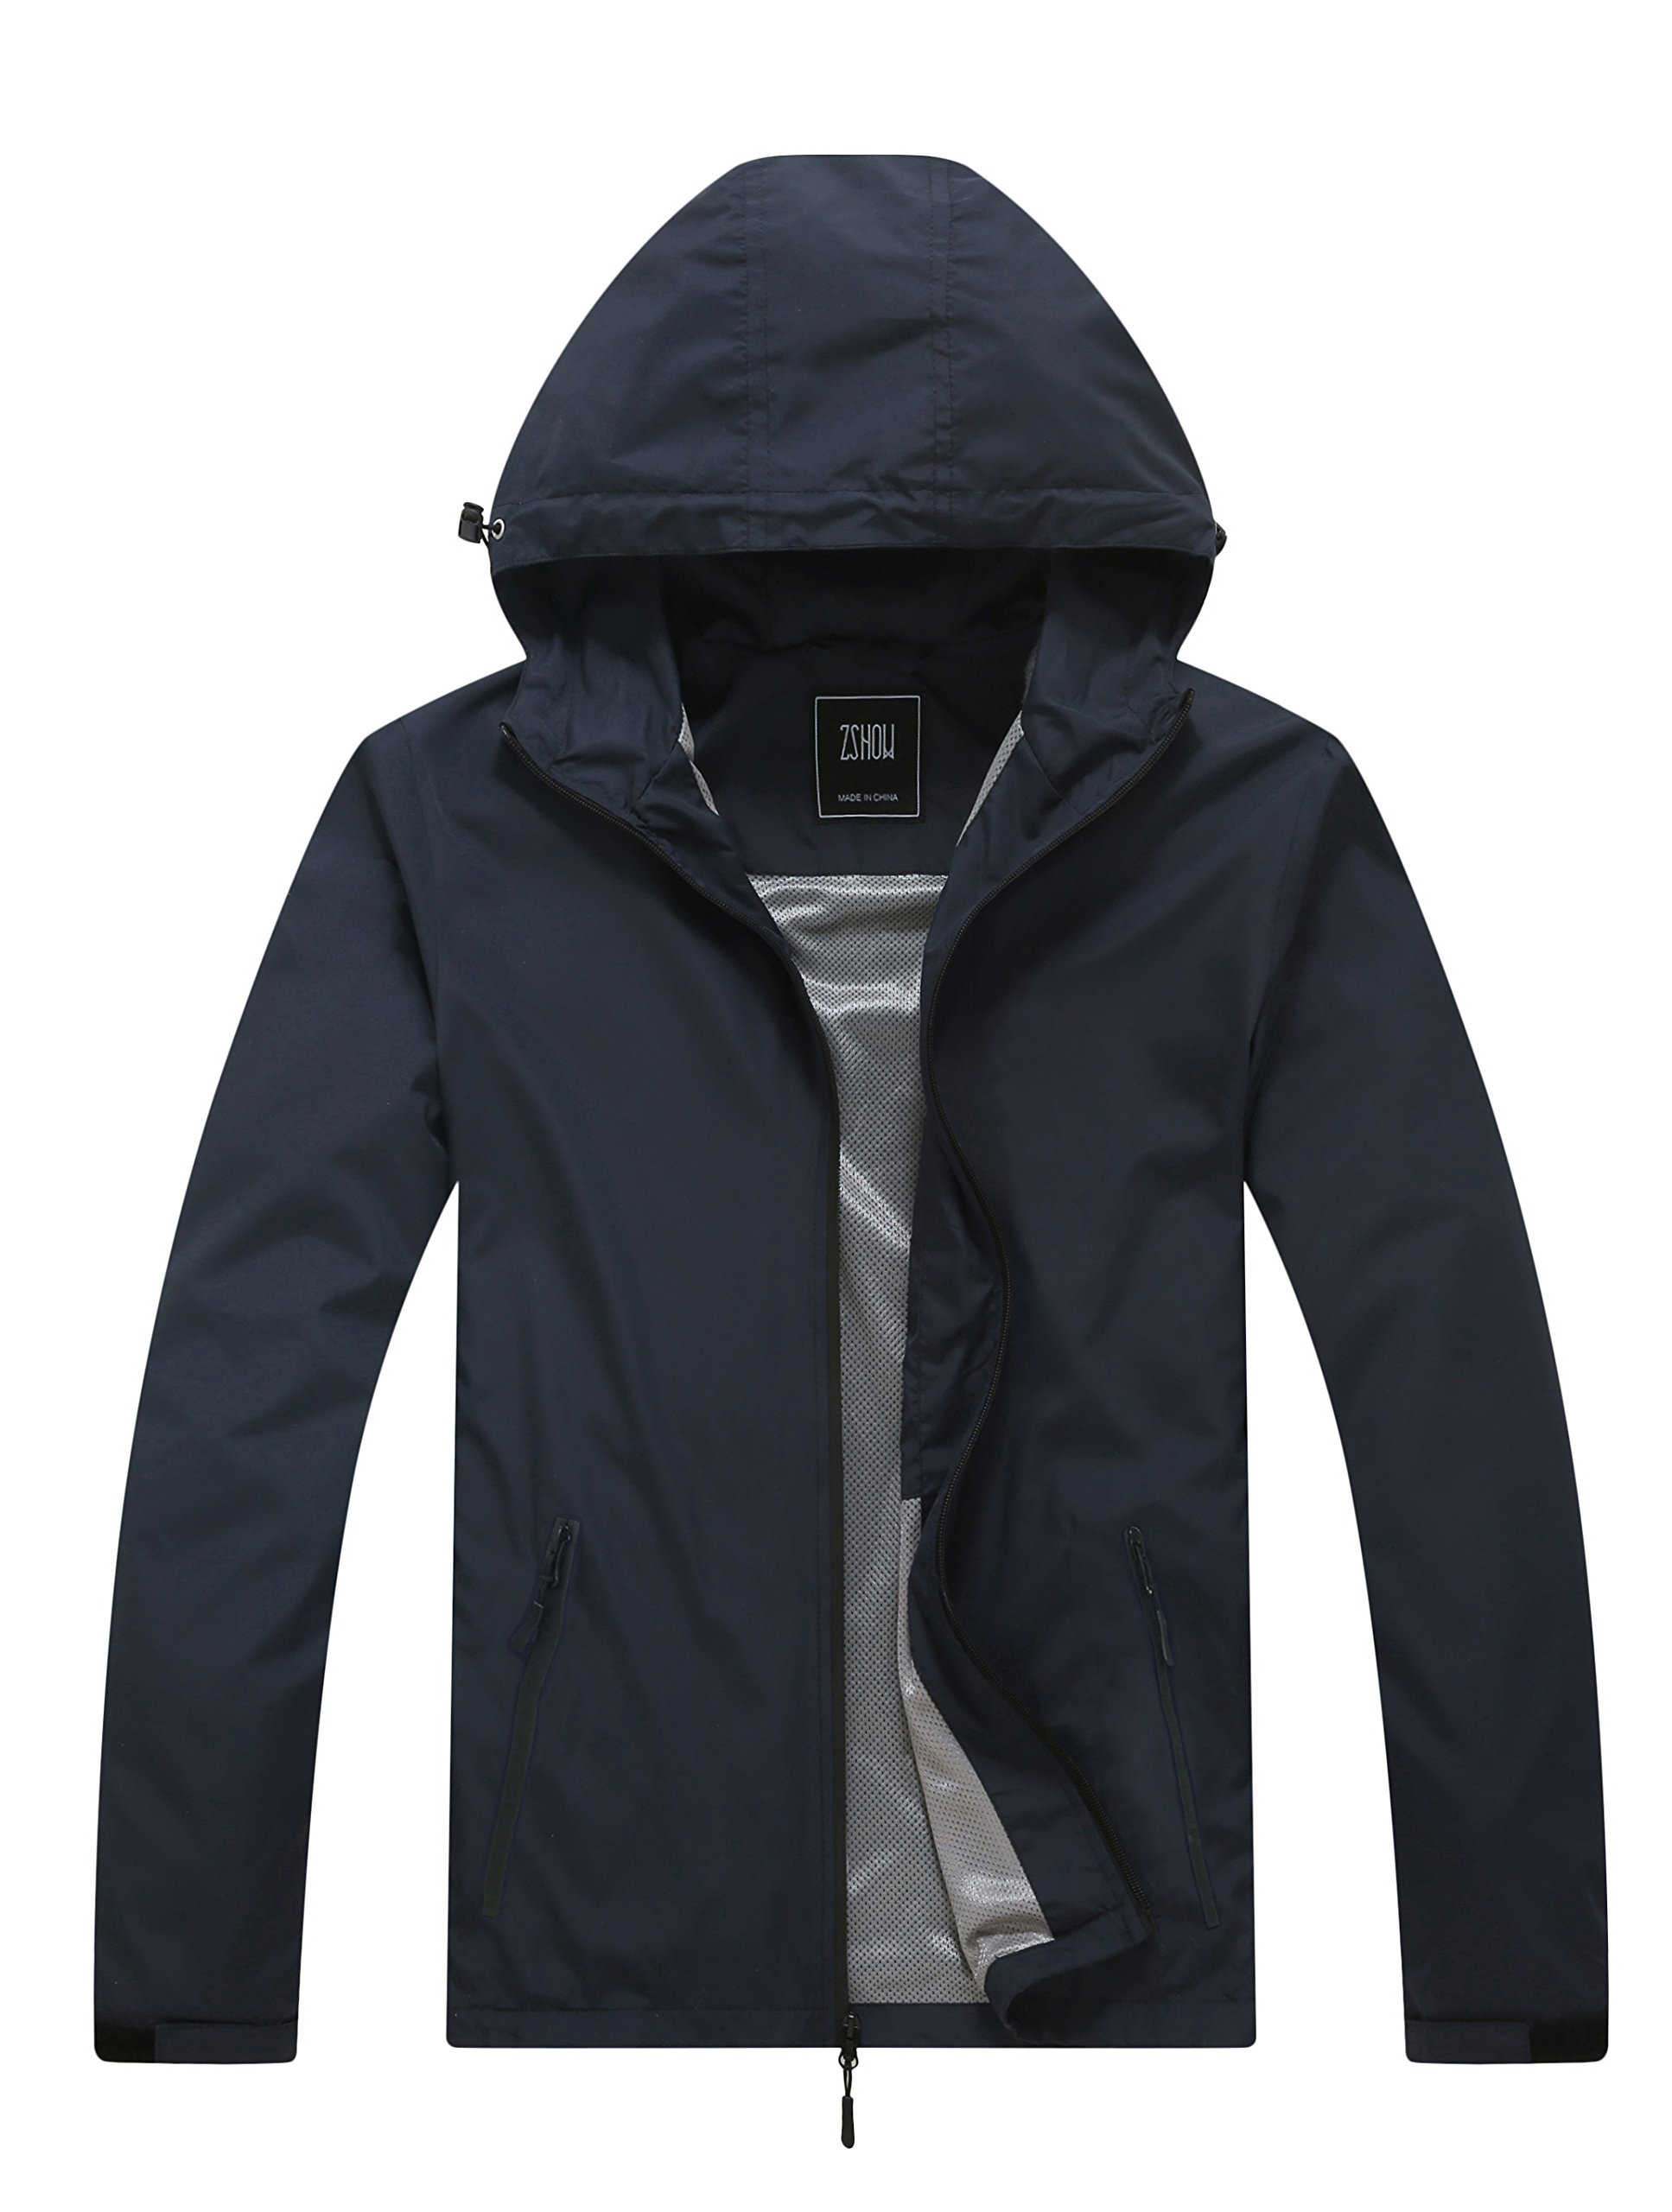 ZSHOW Men's Spring Lightweight Skin Coat Packable Windproof Jacket For Camping(Navy,Small)